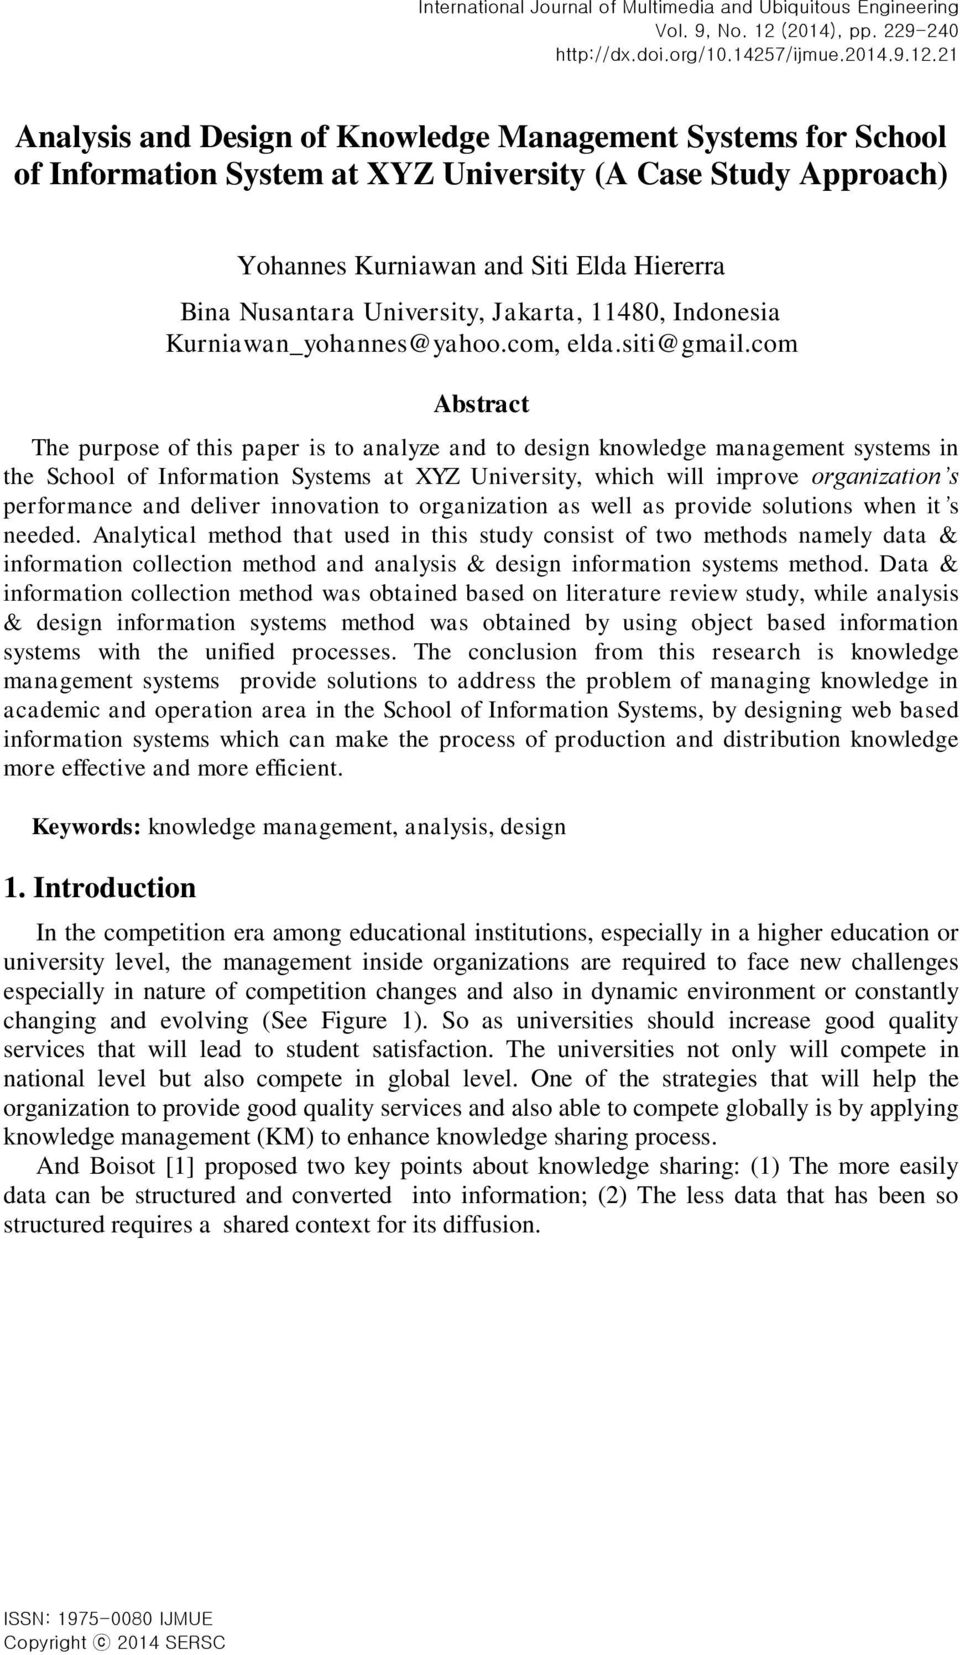 Analysis And Design Of Knowledge Management Systems For School Of Information System At Xyz University A Case Study Approach Pdf Free Download